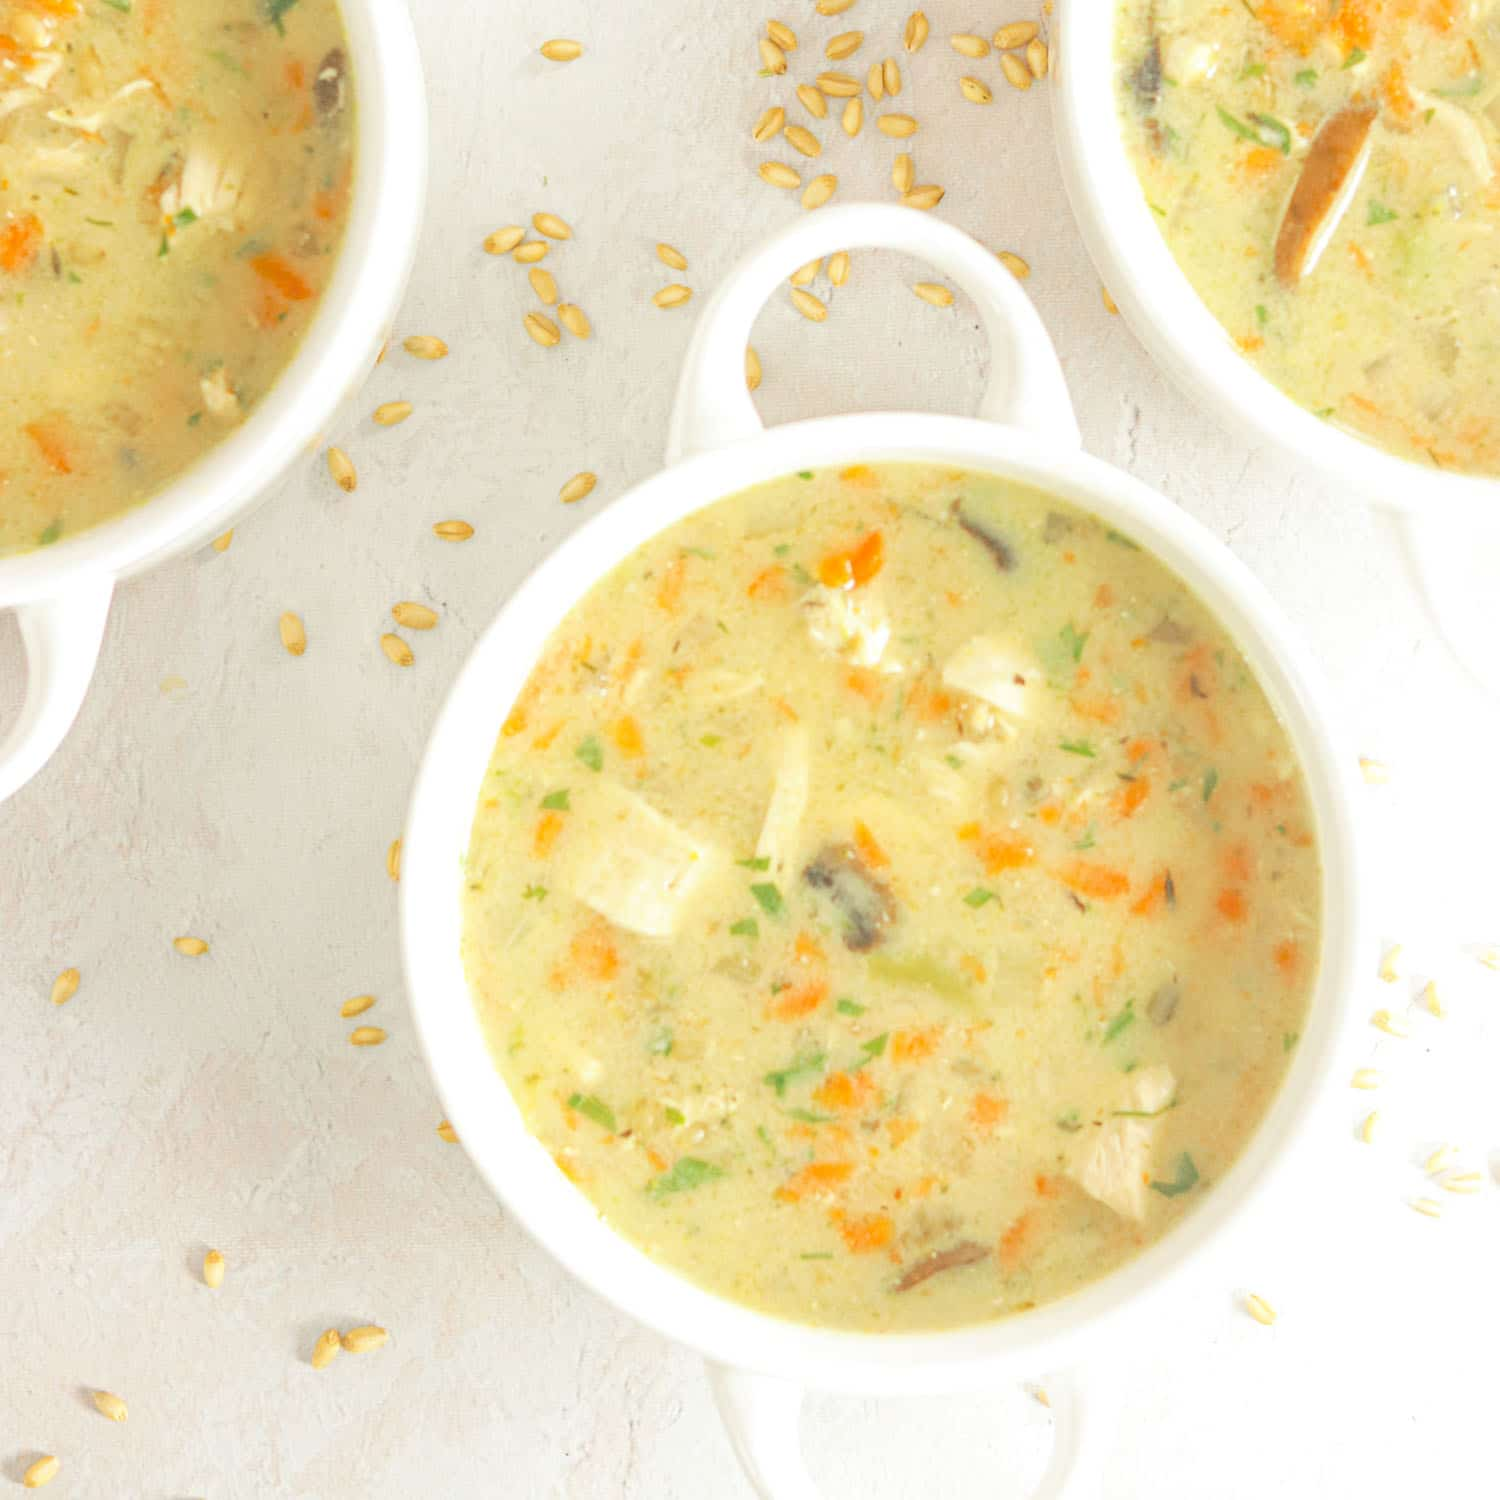 Chicken Soup in bowls with vegetables and wheat berries